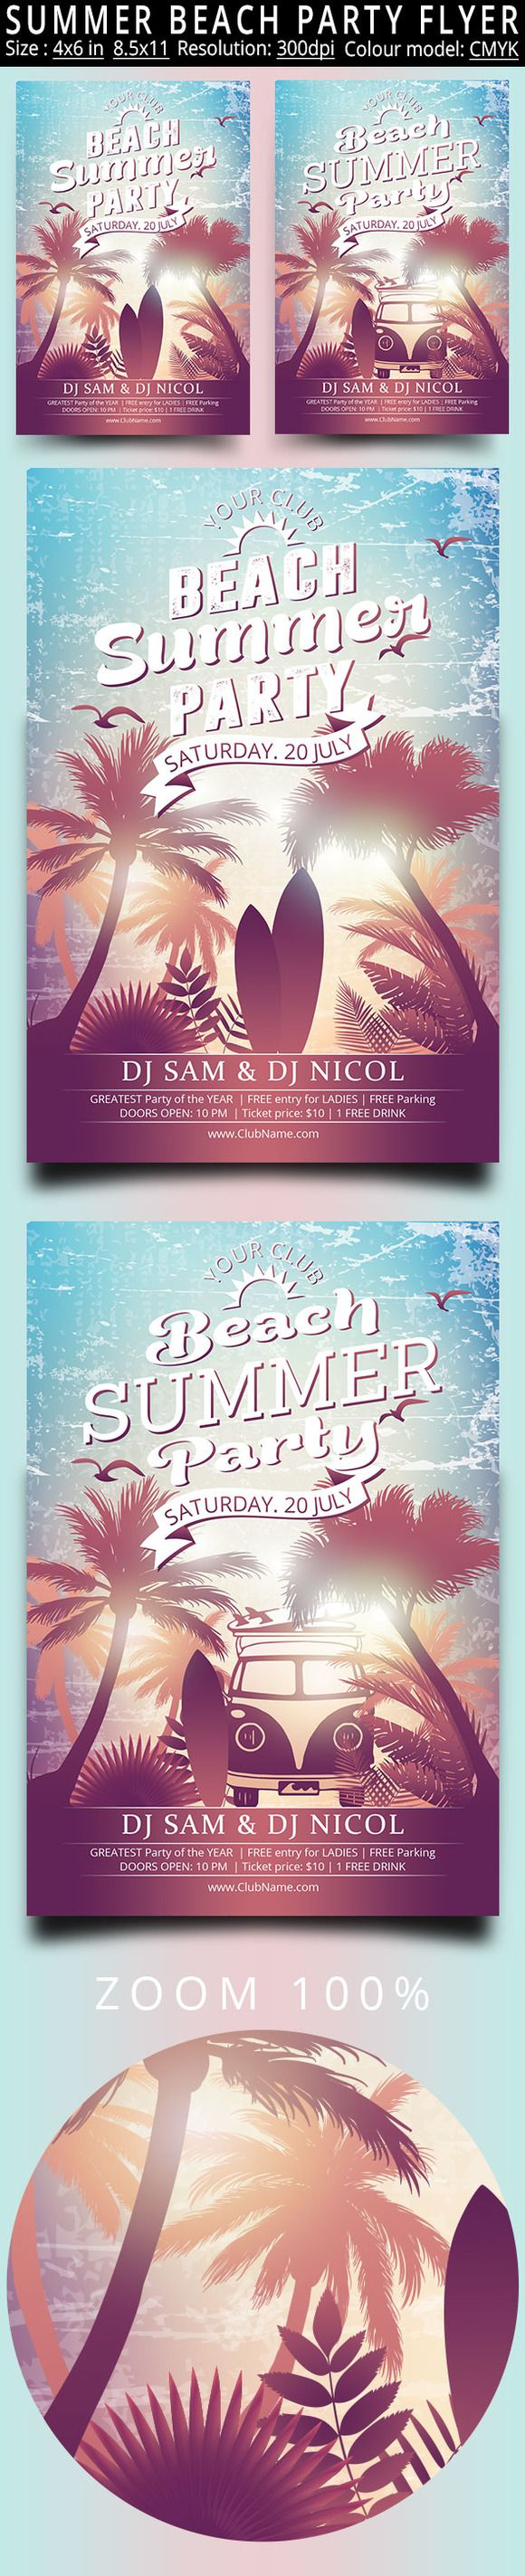 Summer Beach Party Vintage Flyer by oloreon on @creativemarket